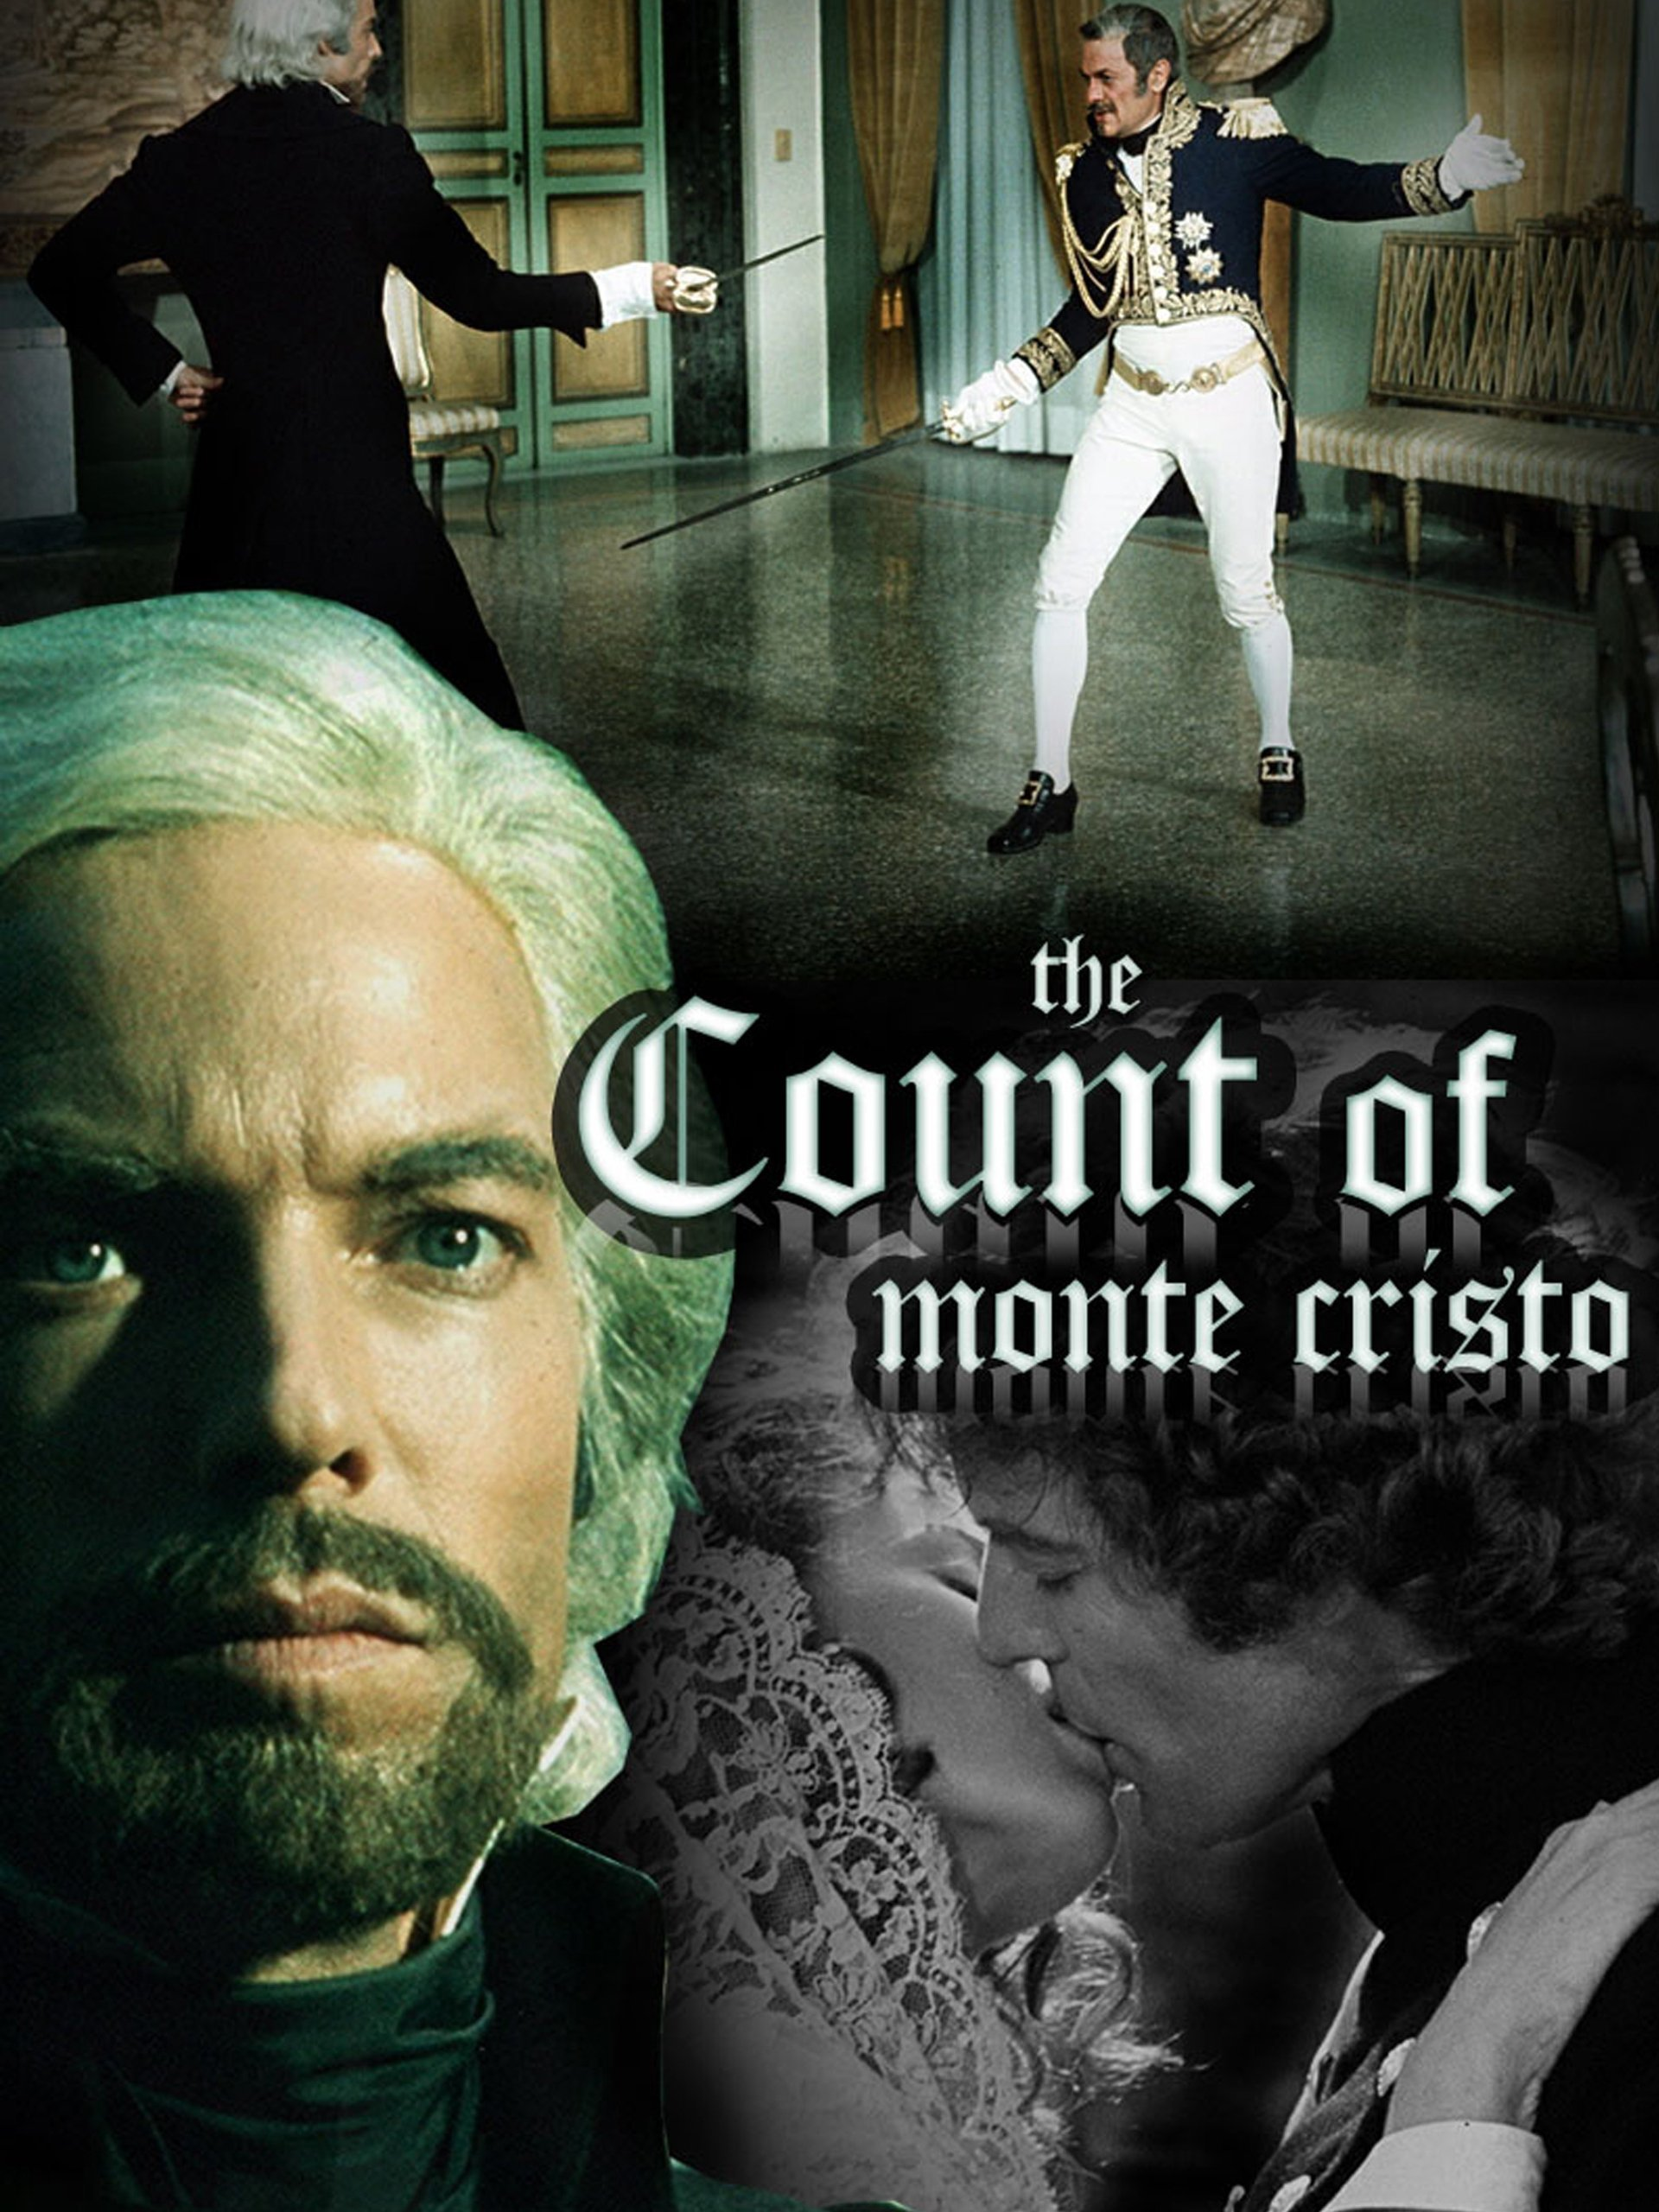 count of monte cristo characters movie